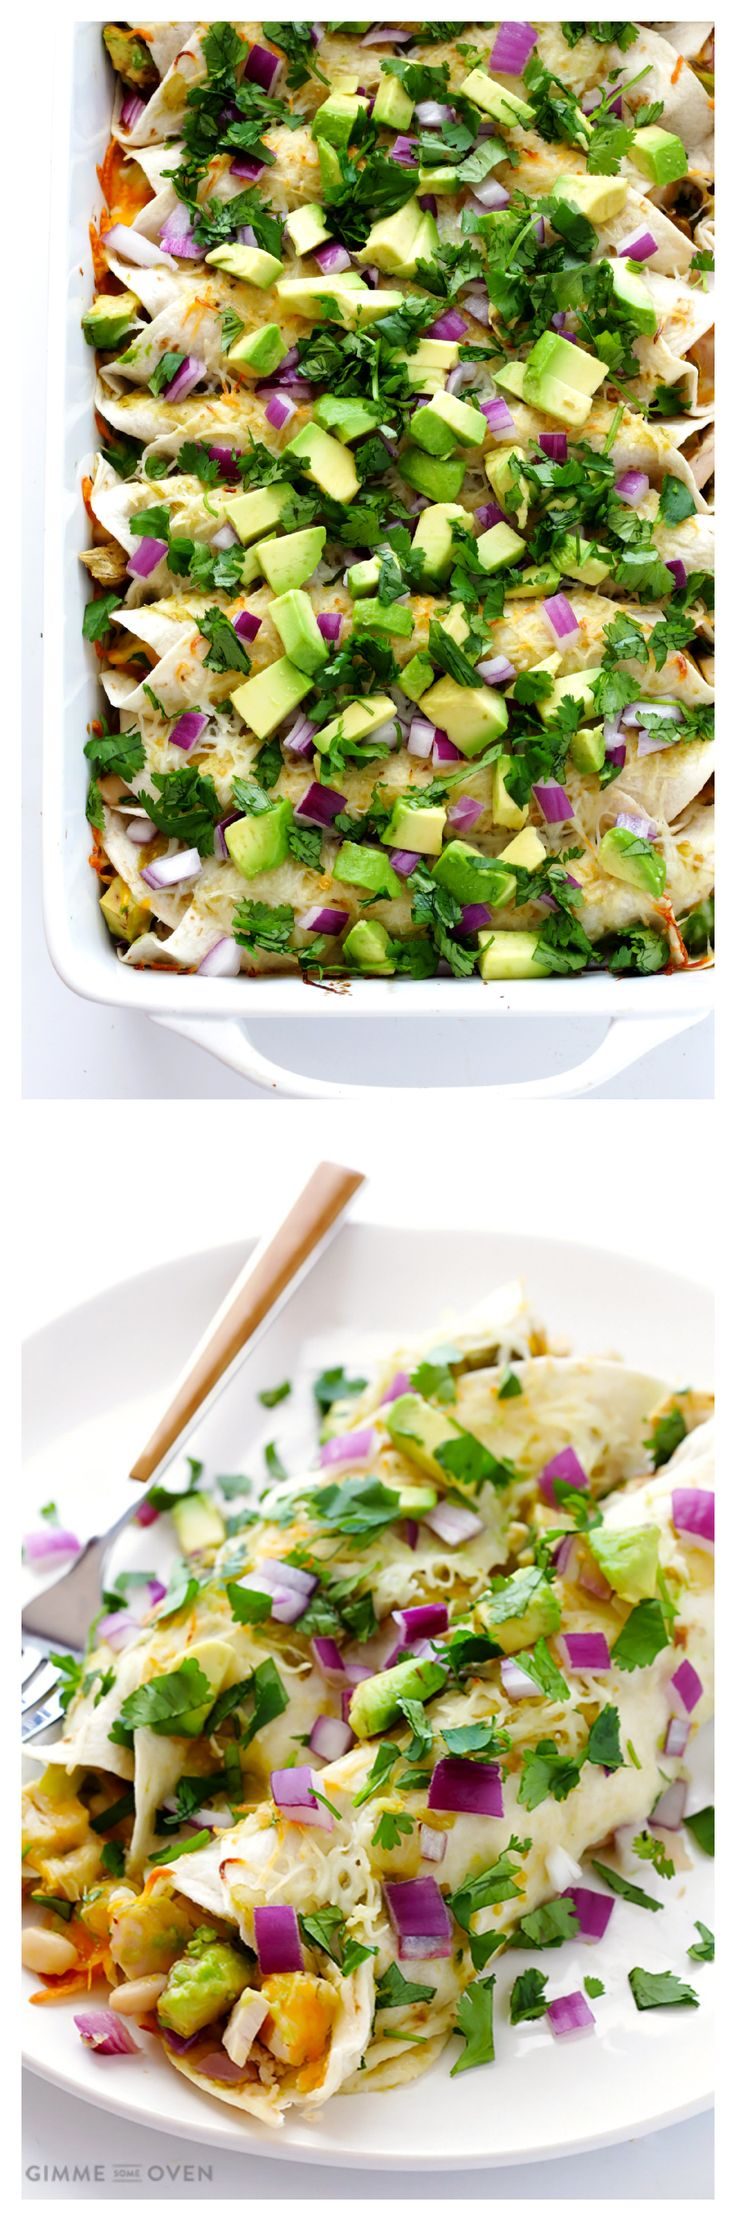 Turkey Enchiladas -- simple to make, and perfect for #Thanksgiving leftovers!   gimmesomeoven.com